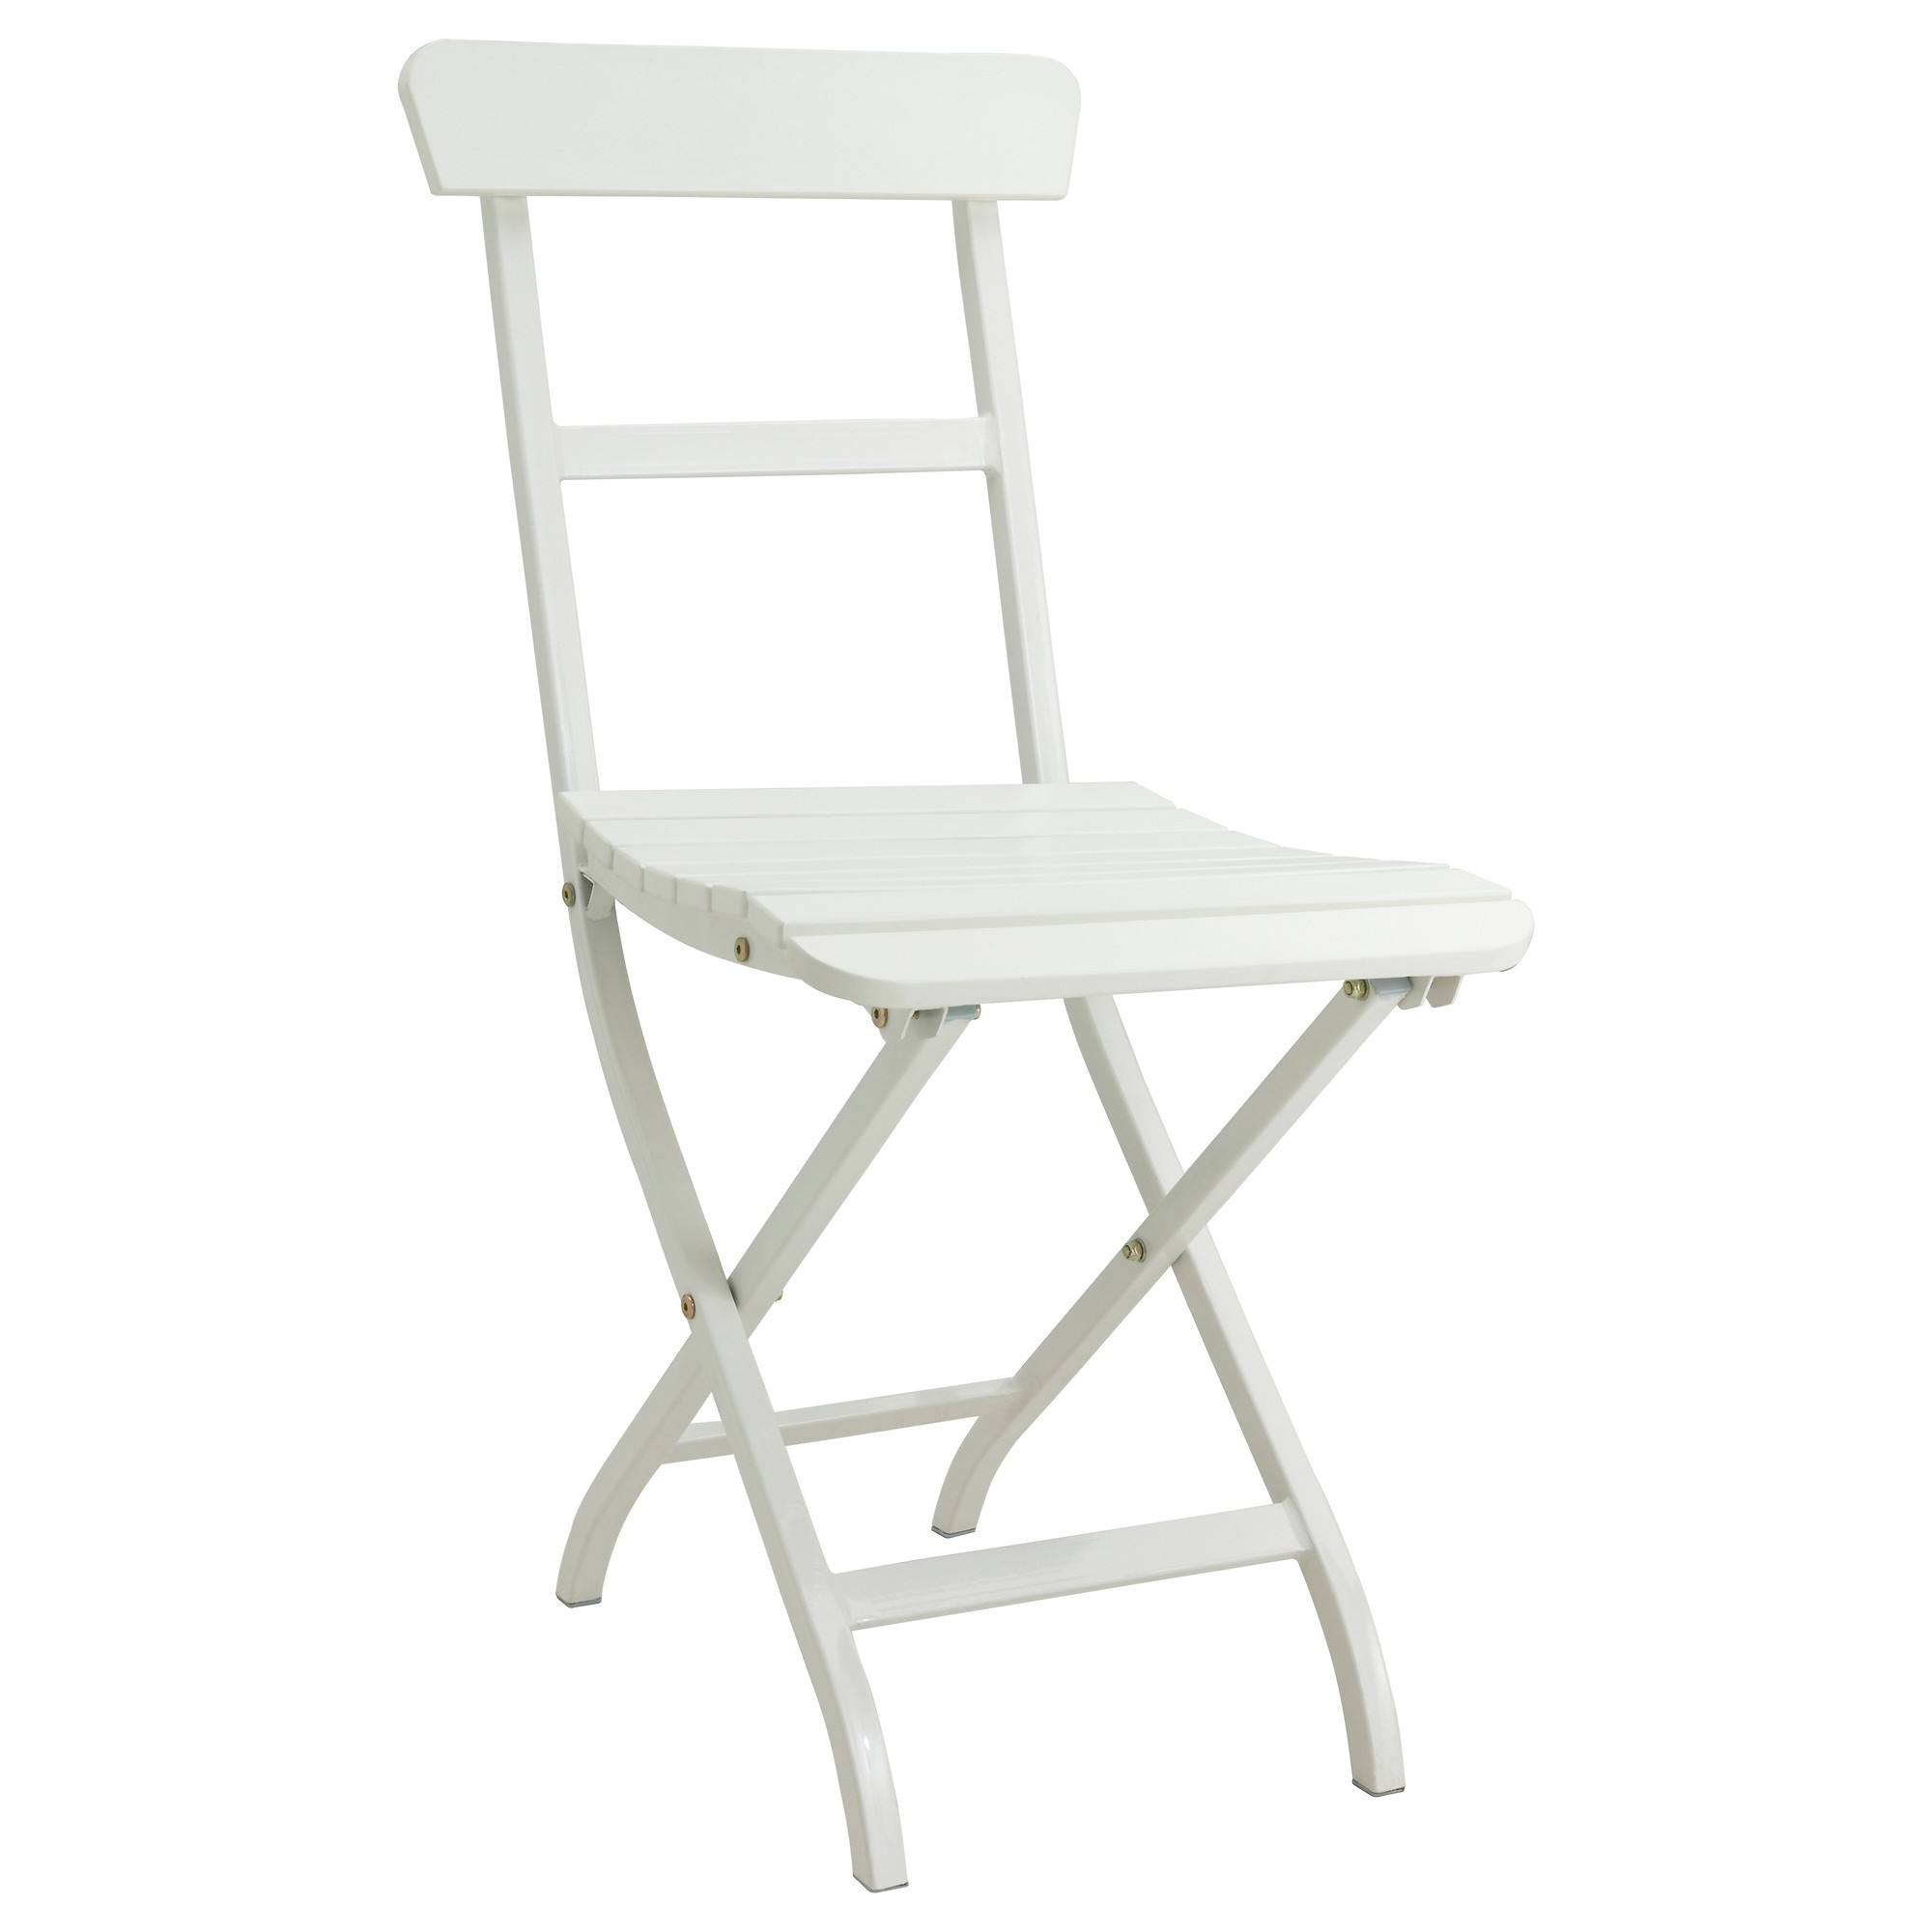 Ikea chaises cuisine bernhard chaise ikea le sige for Table et chaise ikea